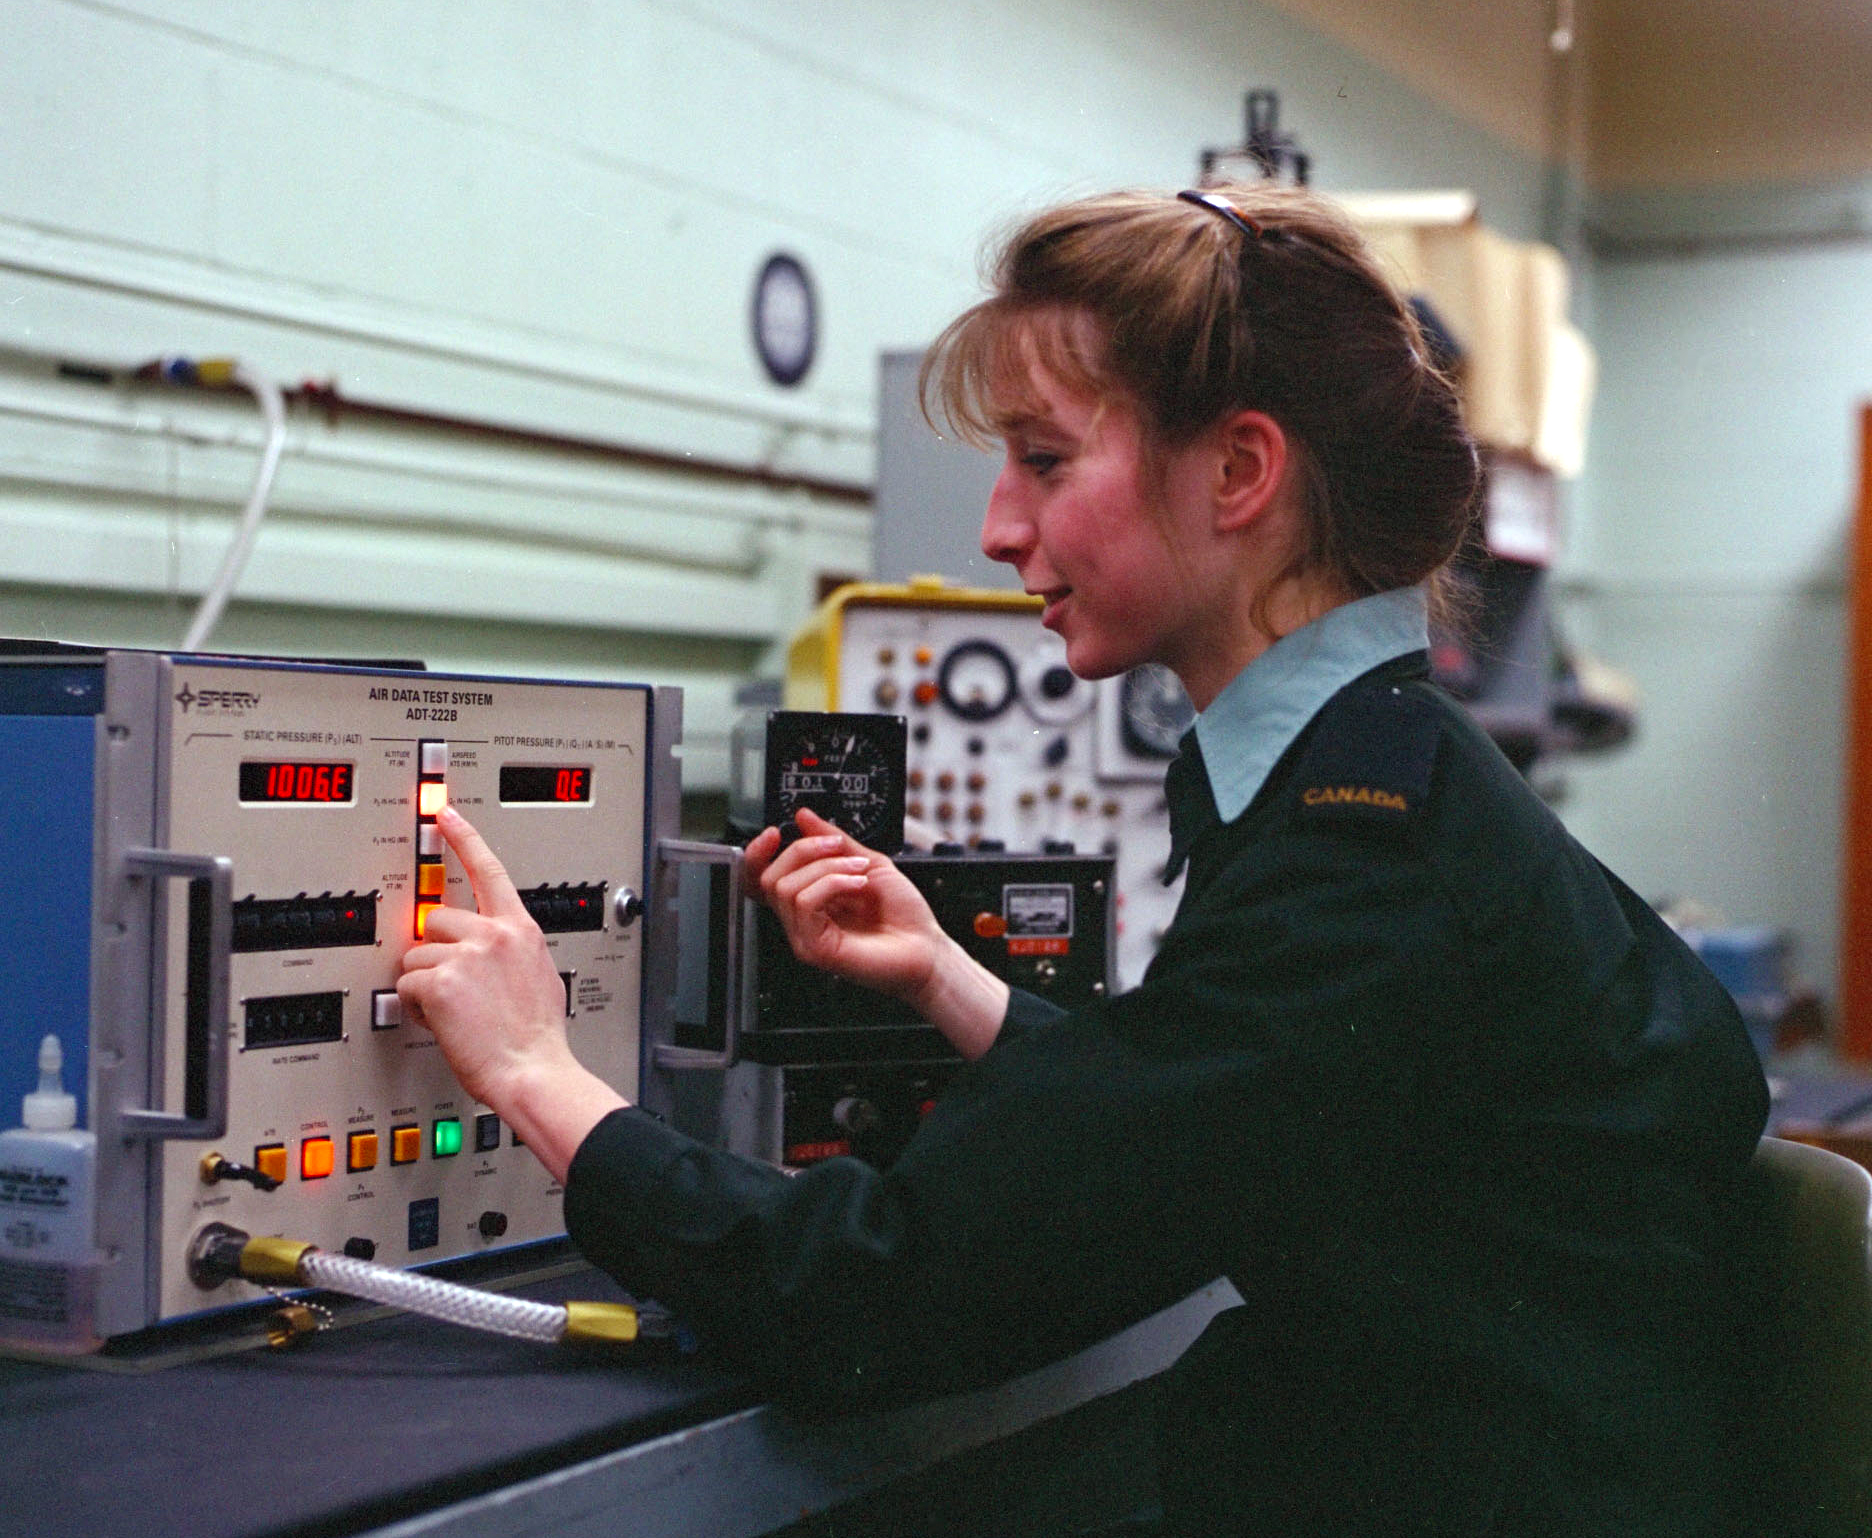 Dans cette photo, prise vers 1985, la soldat Maryse Ayotte, technicienne en instrumentation, teste l'altimètre d'un avion. PHOTO : Archives du MDN, ISC85-1163